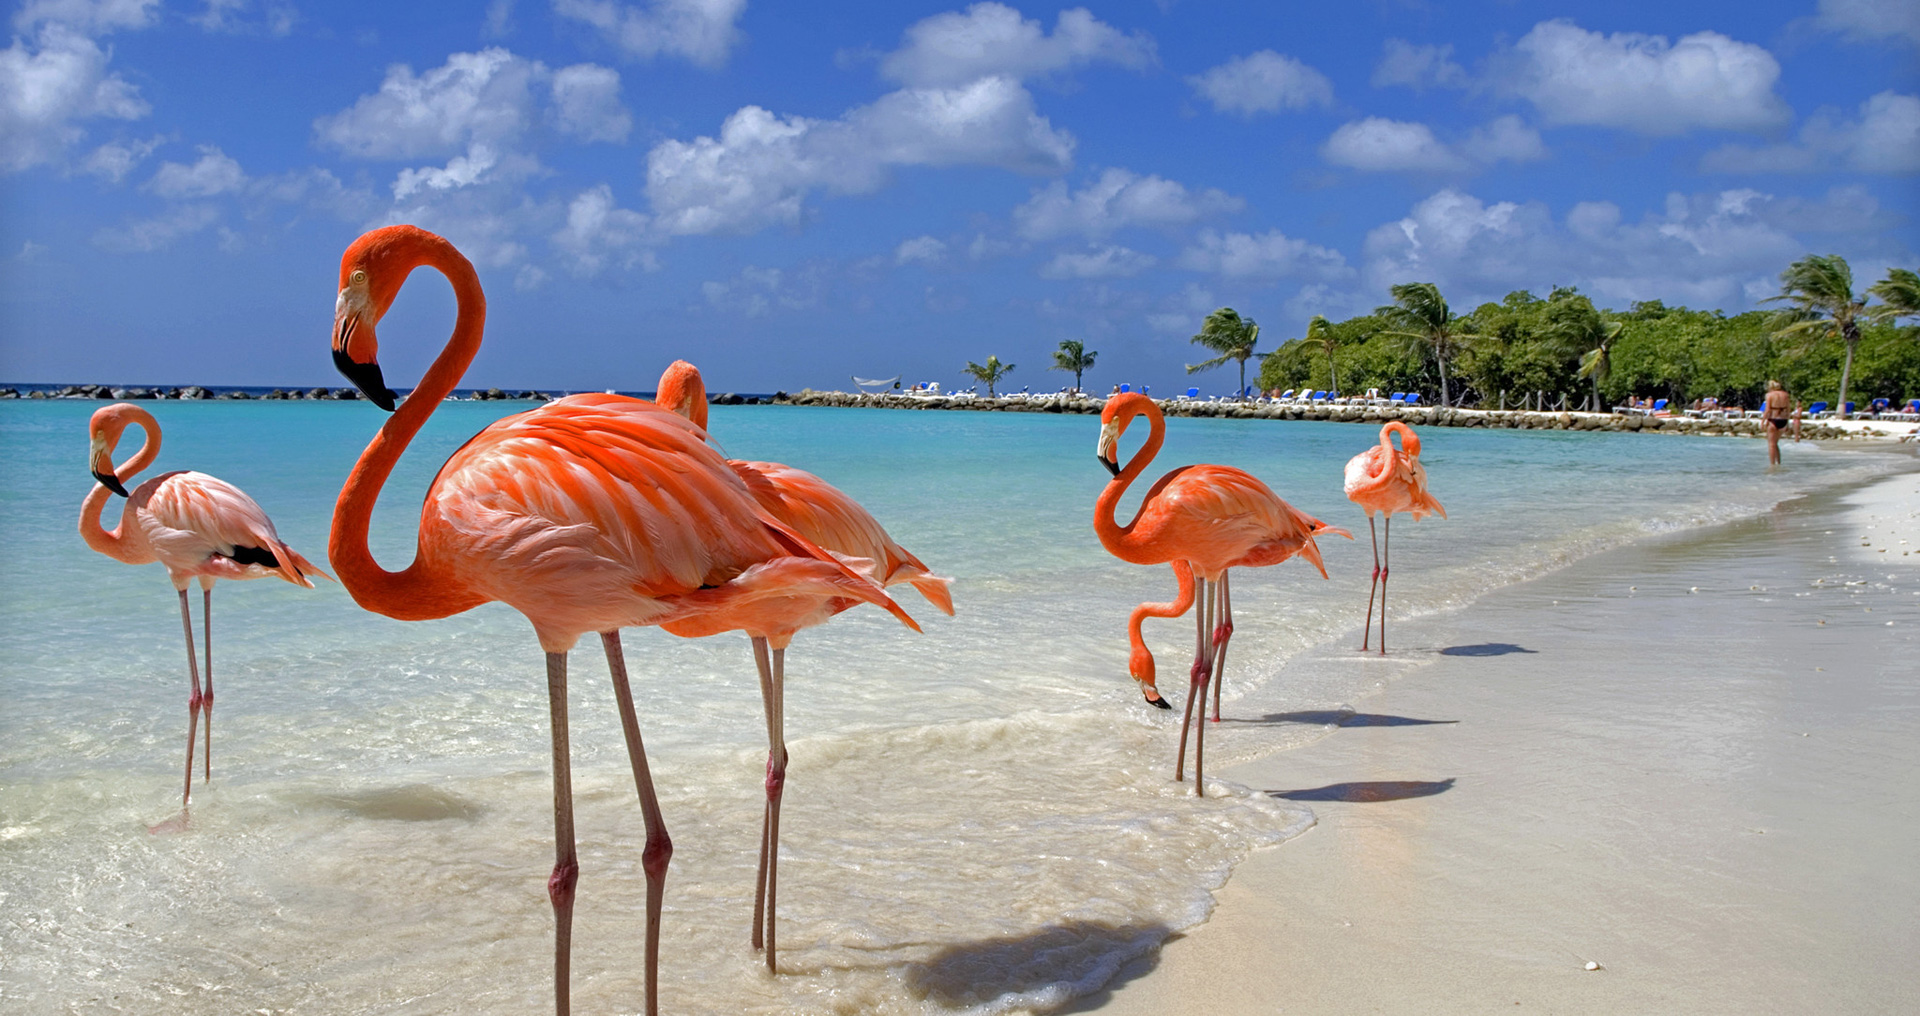 Private Jet Charter to Aruba